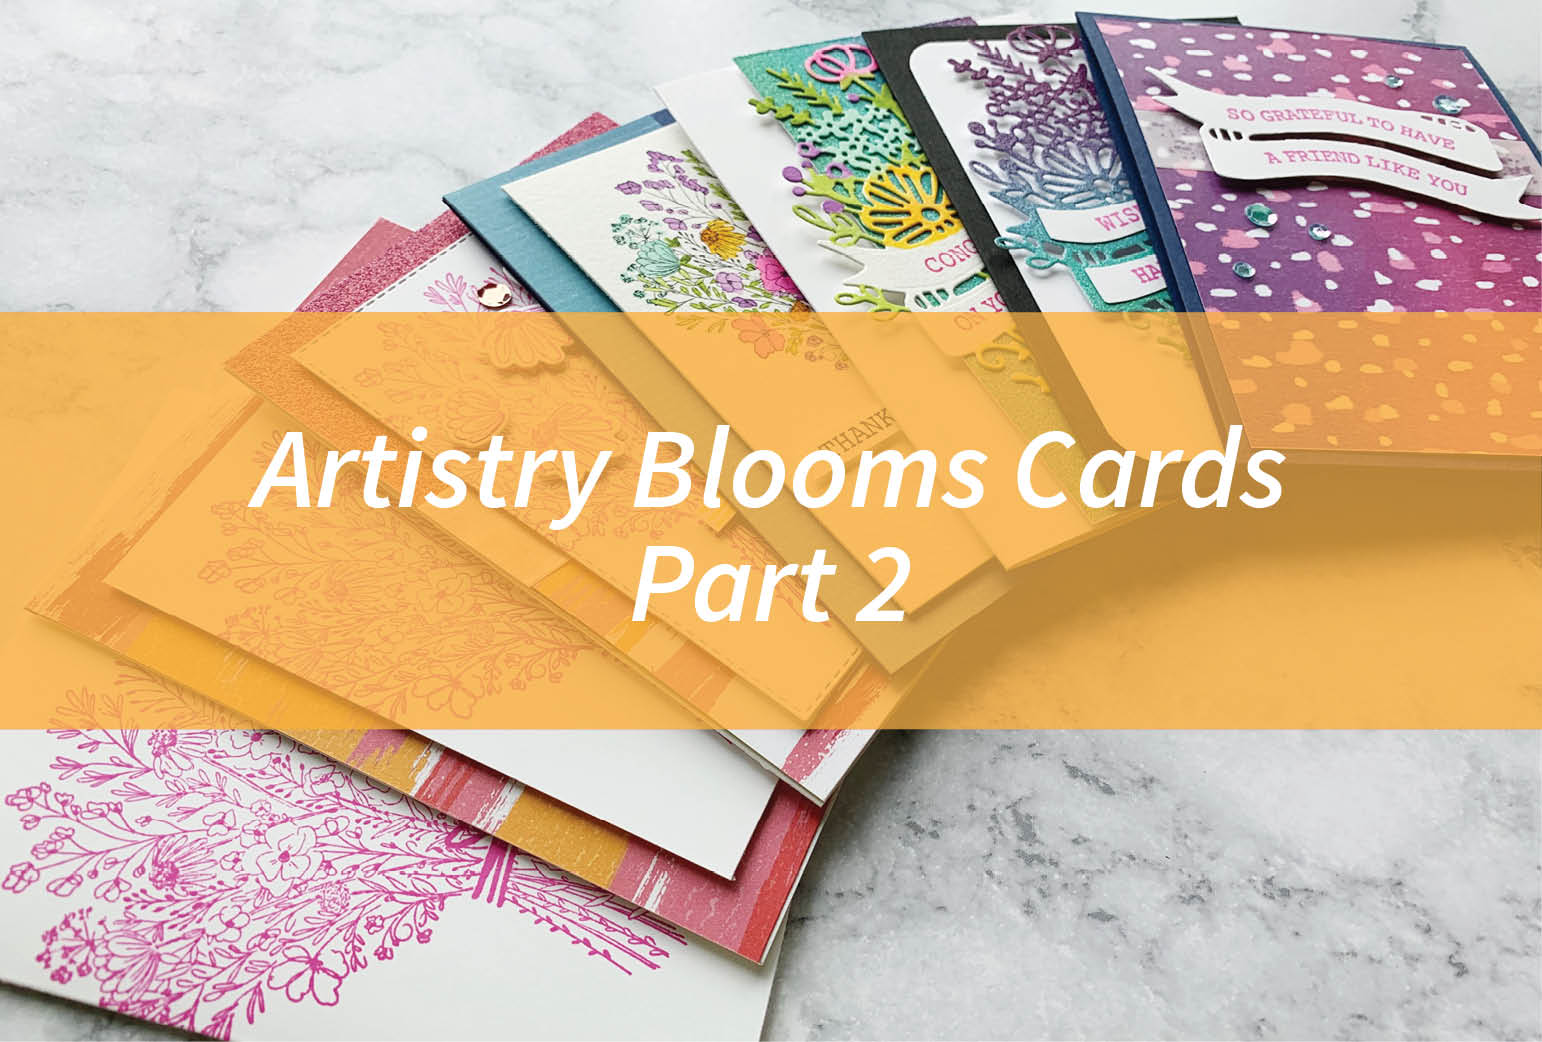 Artistry Blooms Cards Part 2